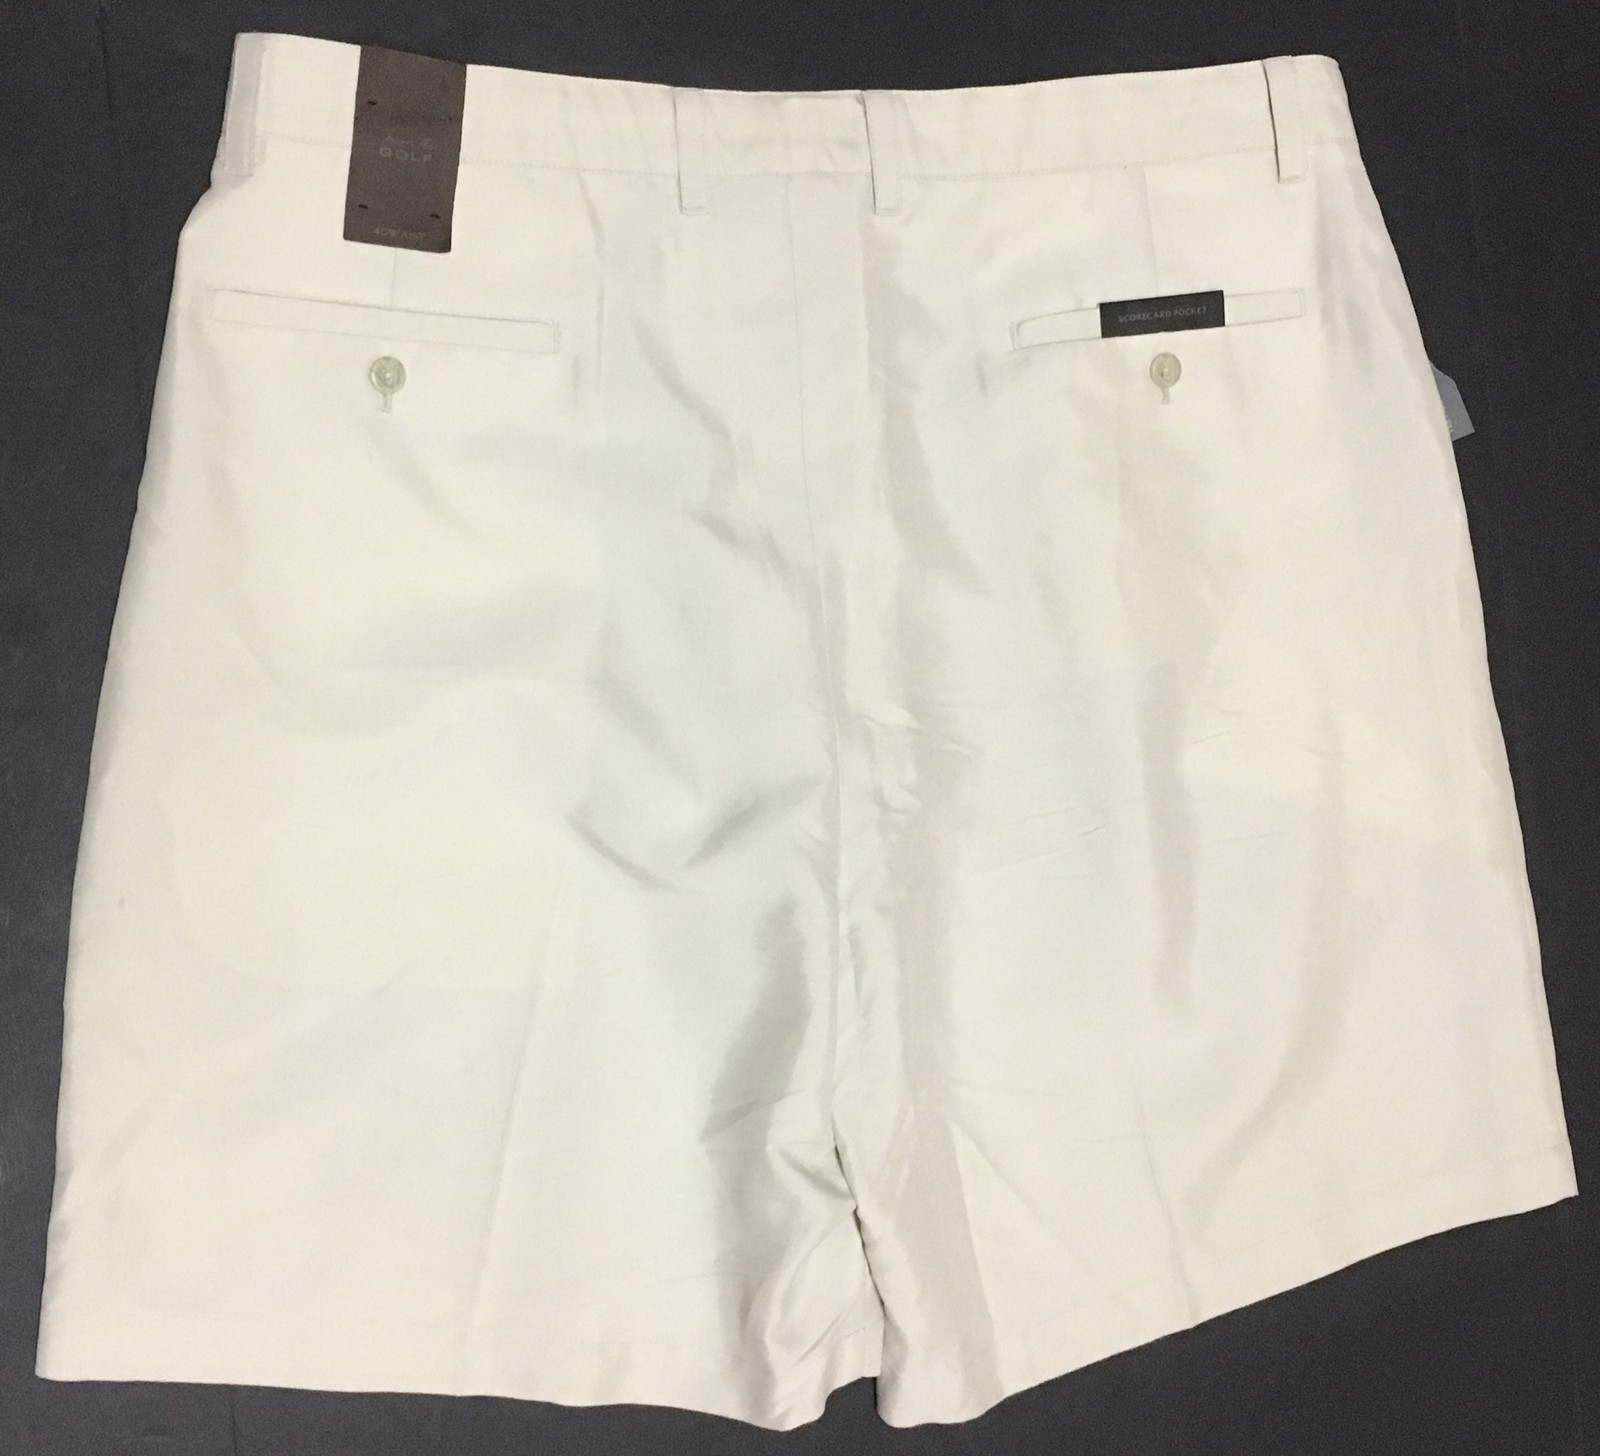 Tasso Elba Men's Golf Shorts NWT Sz 40 Beige Khaki